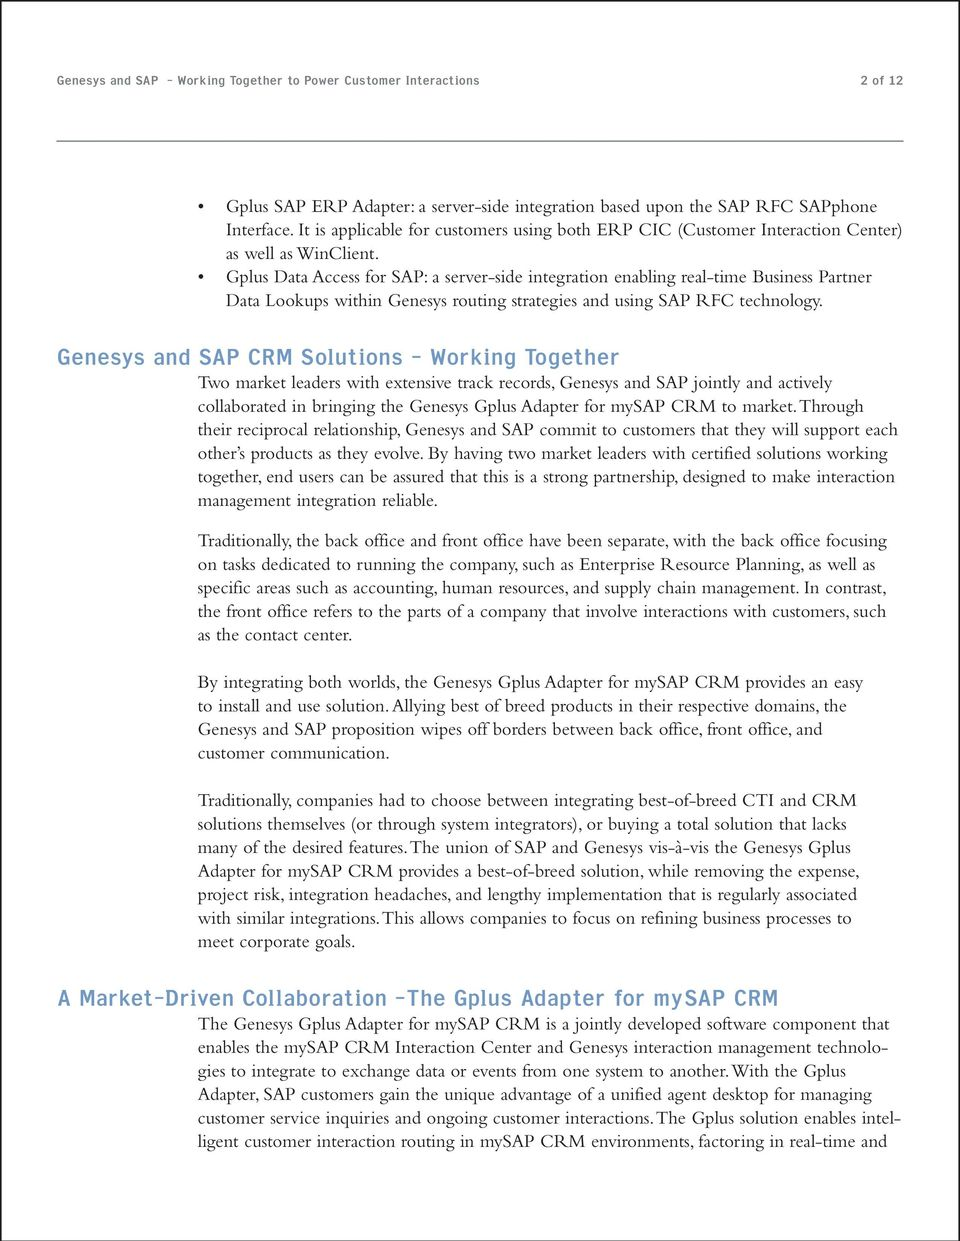 Gplus Data Access for SAP: a server-side integration enabling real-time Business Partner Data Lookups within Genesys routing strategies and using SAP RFC technology.